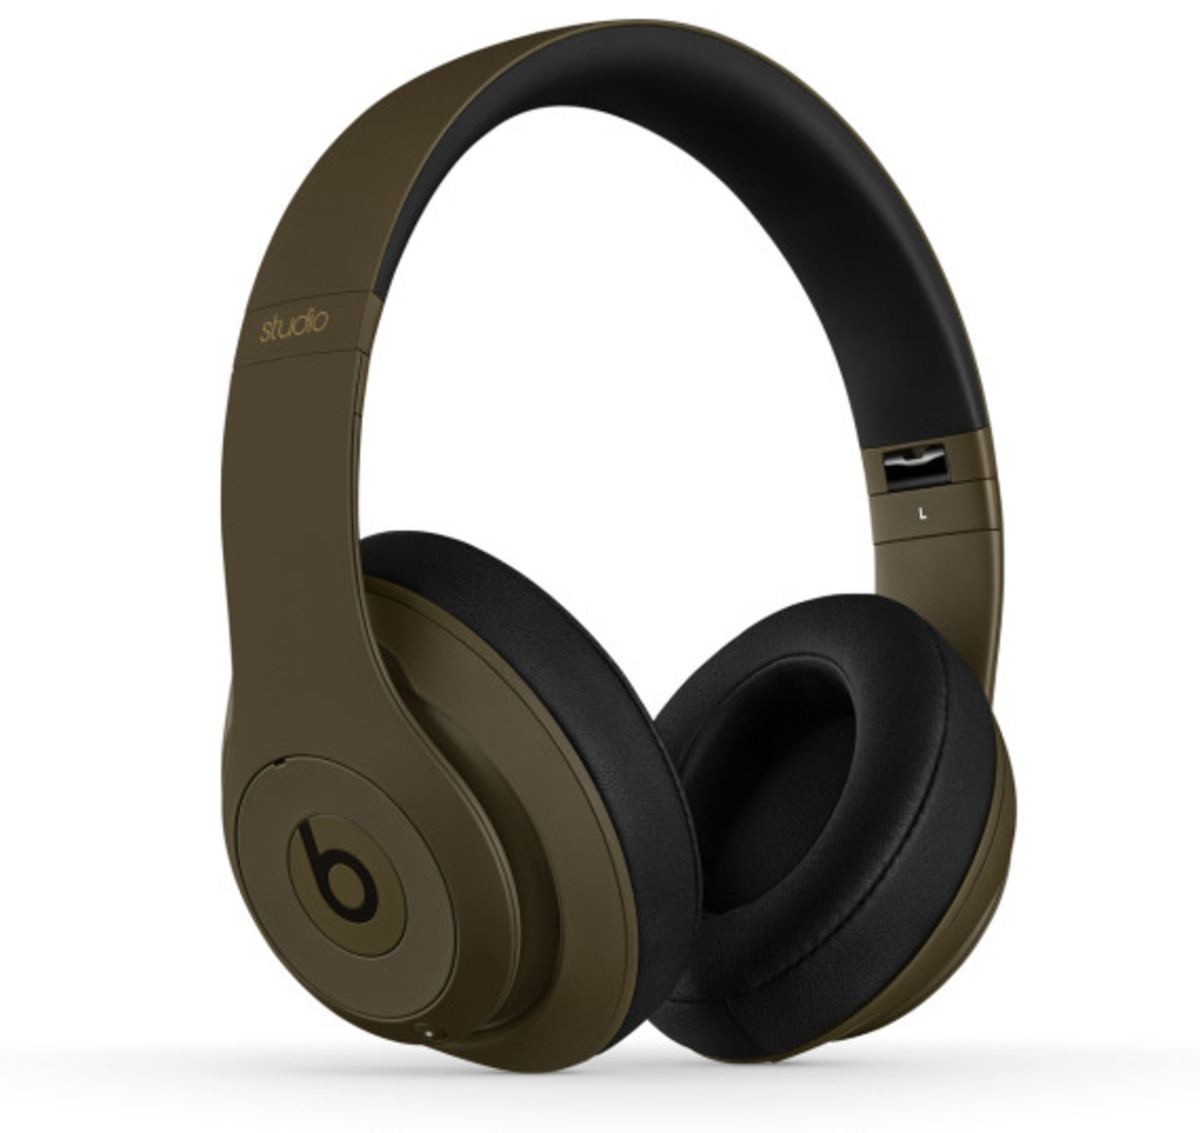 undefeated-beats-by-dre-studio-headphones-02